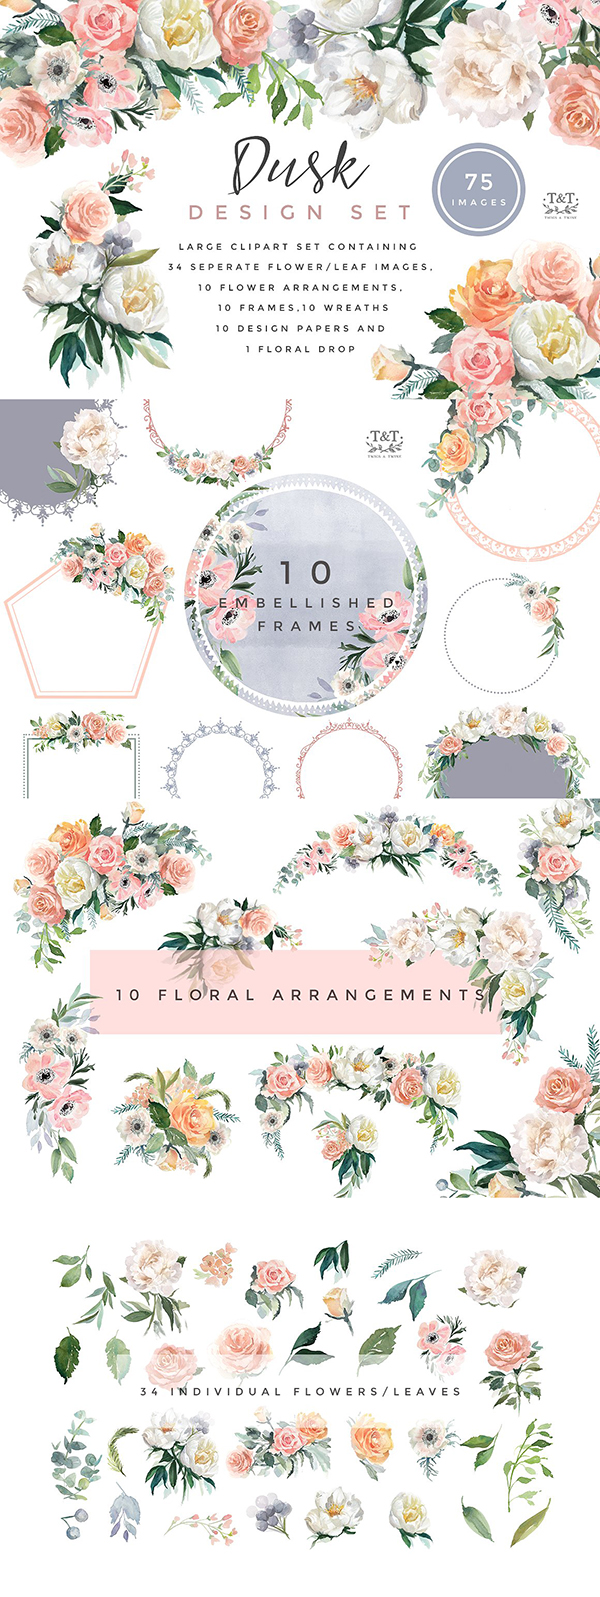 Free Blue Crush Watercolor Floral Elements!.